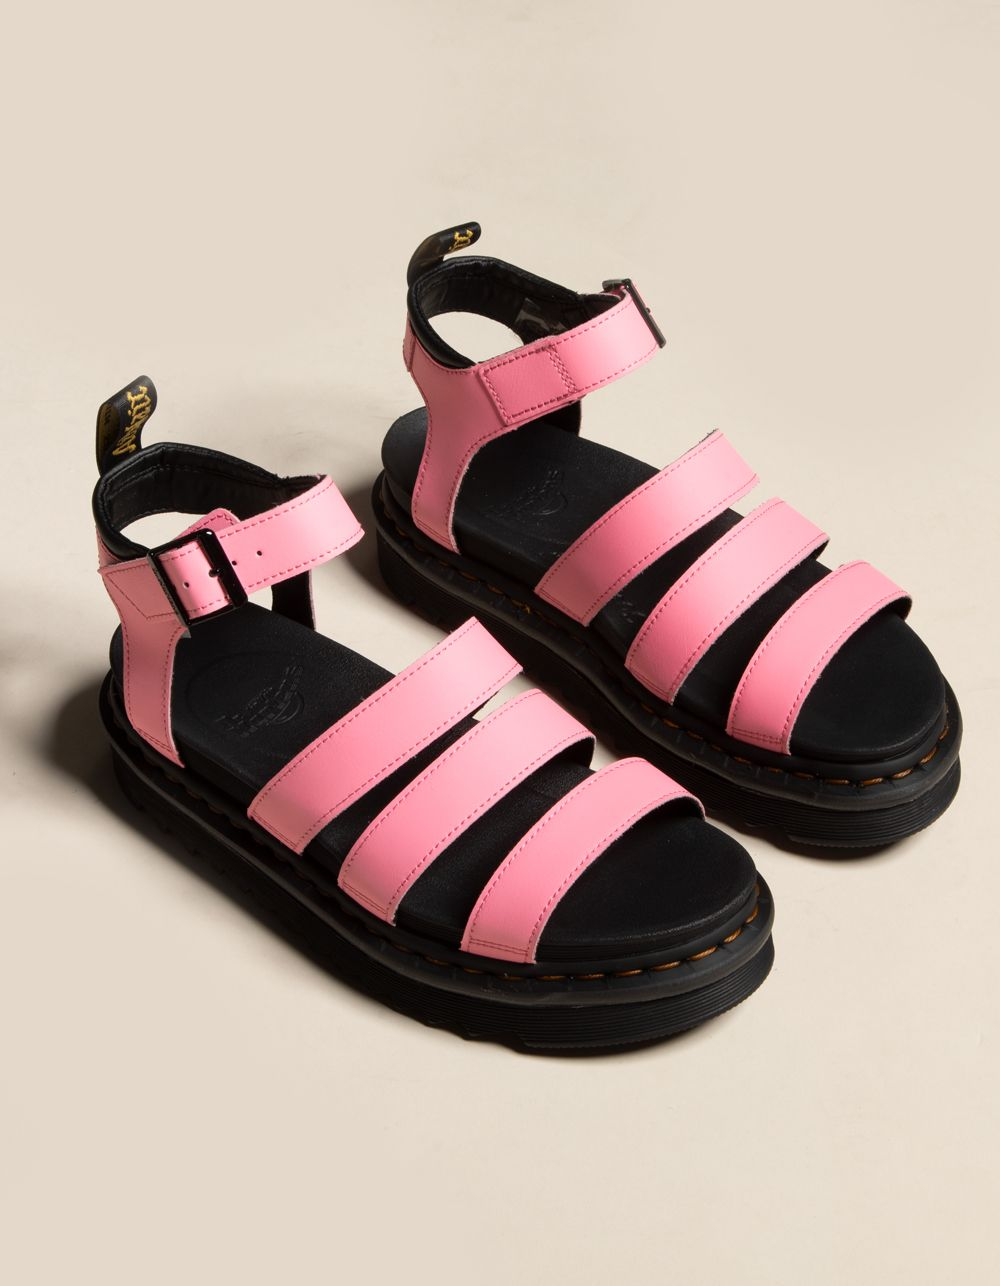 DR. MARTENS Blaire Hydro Leather Pink Lemonade Sandals #pinklemonade